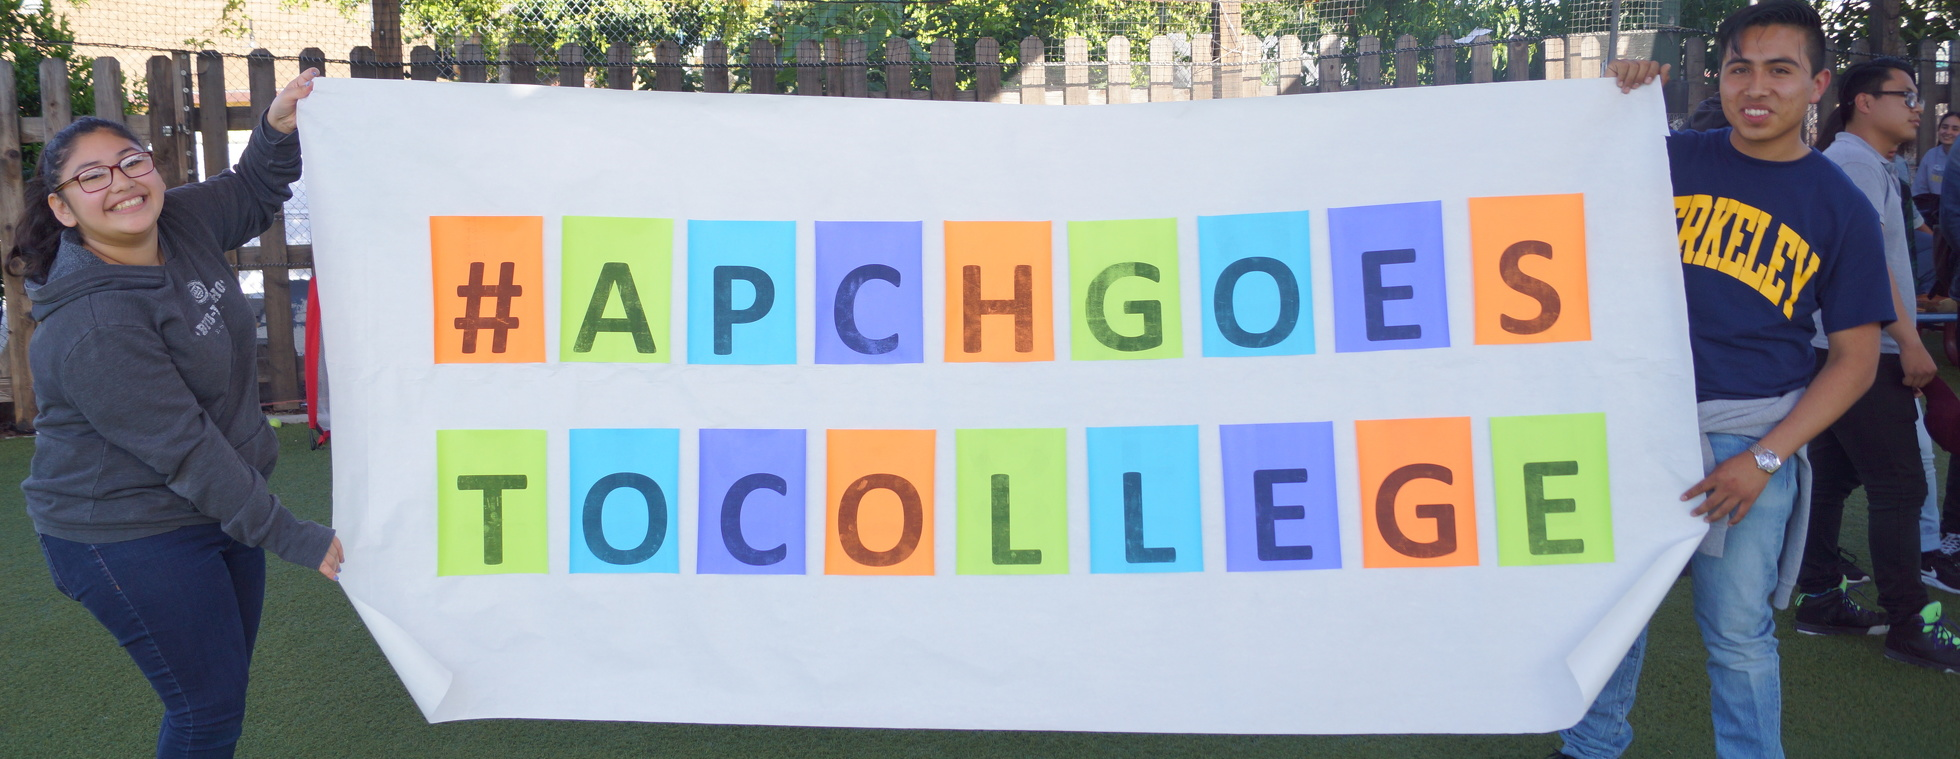 APCH GOES TO COLLEGE